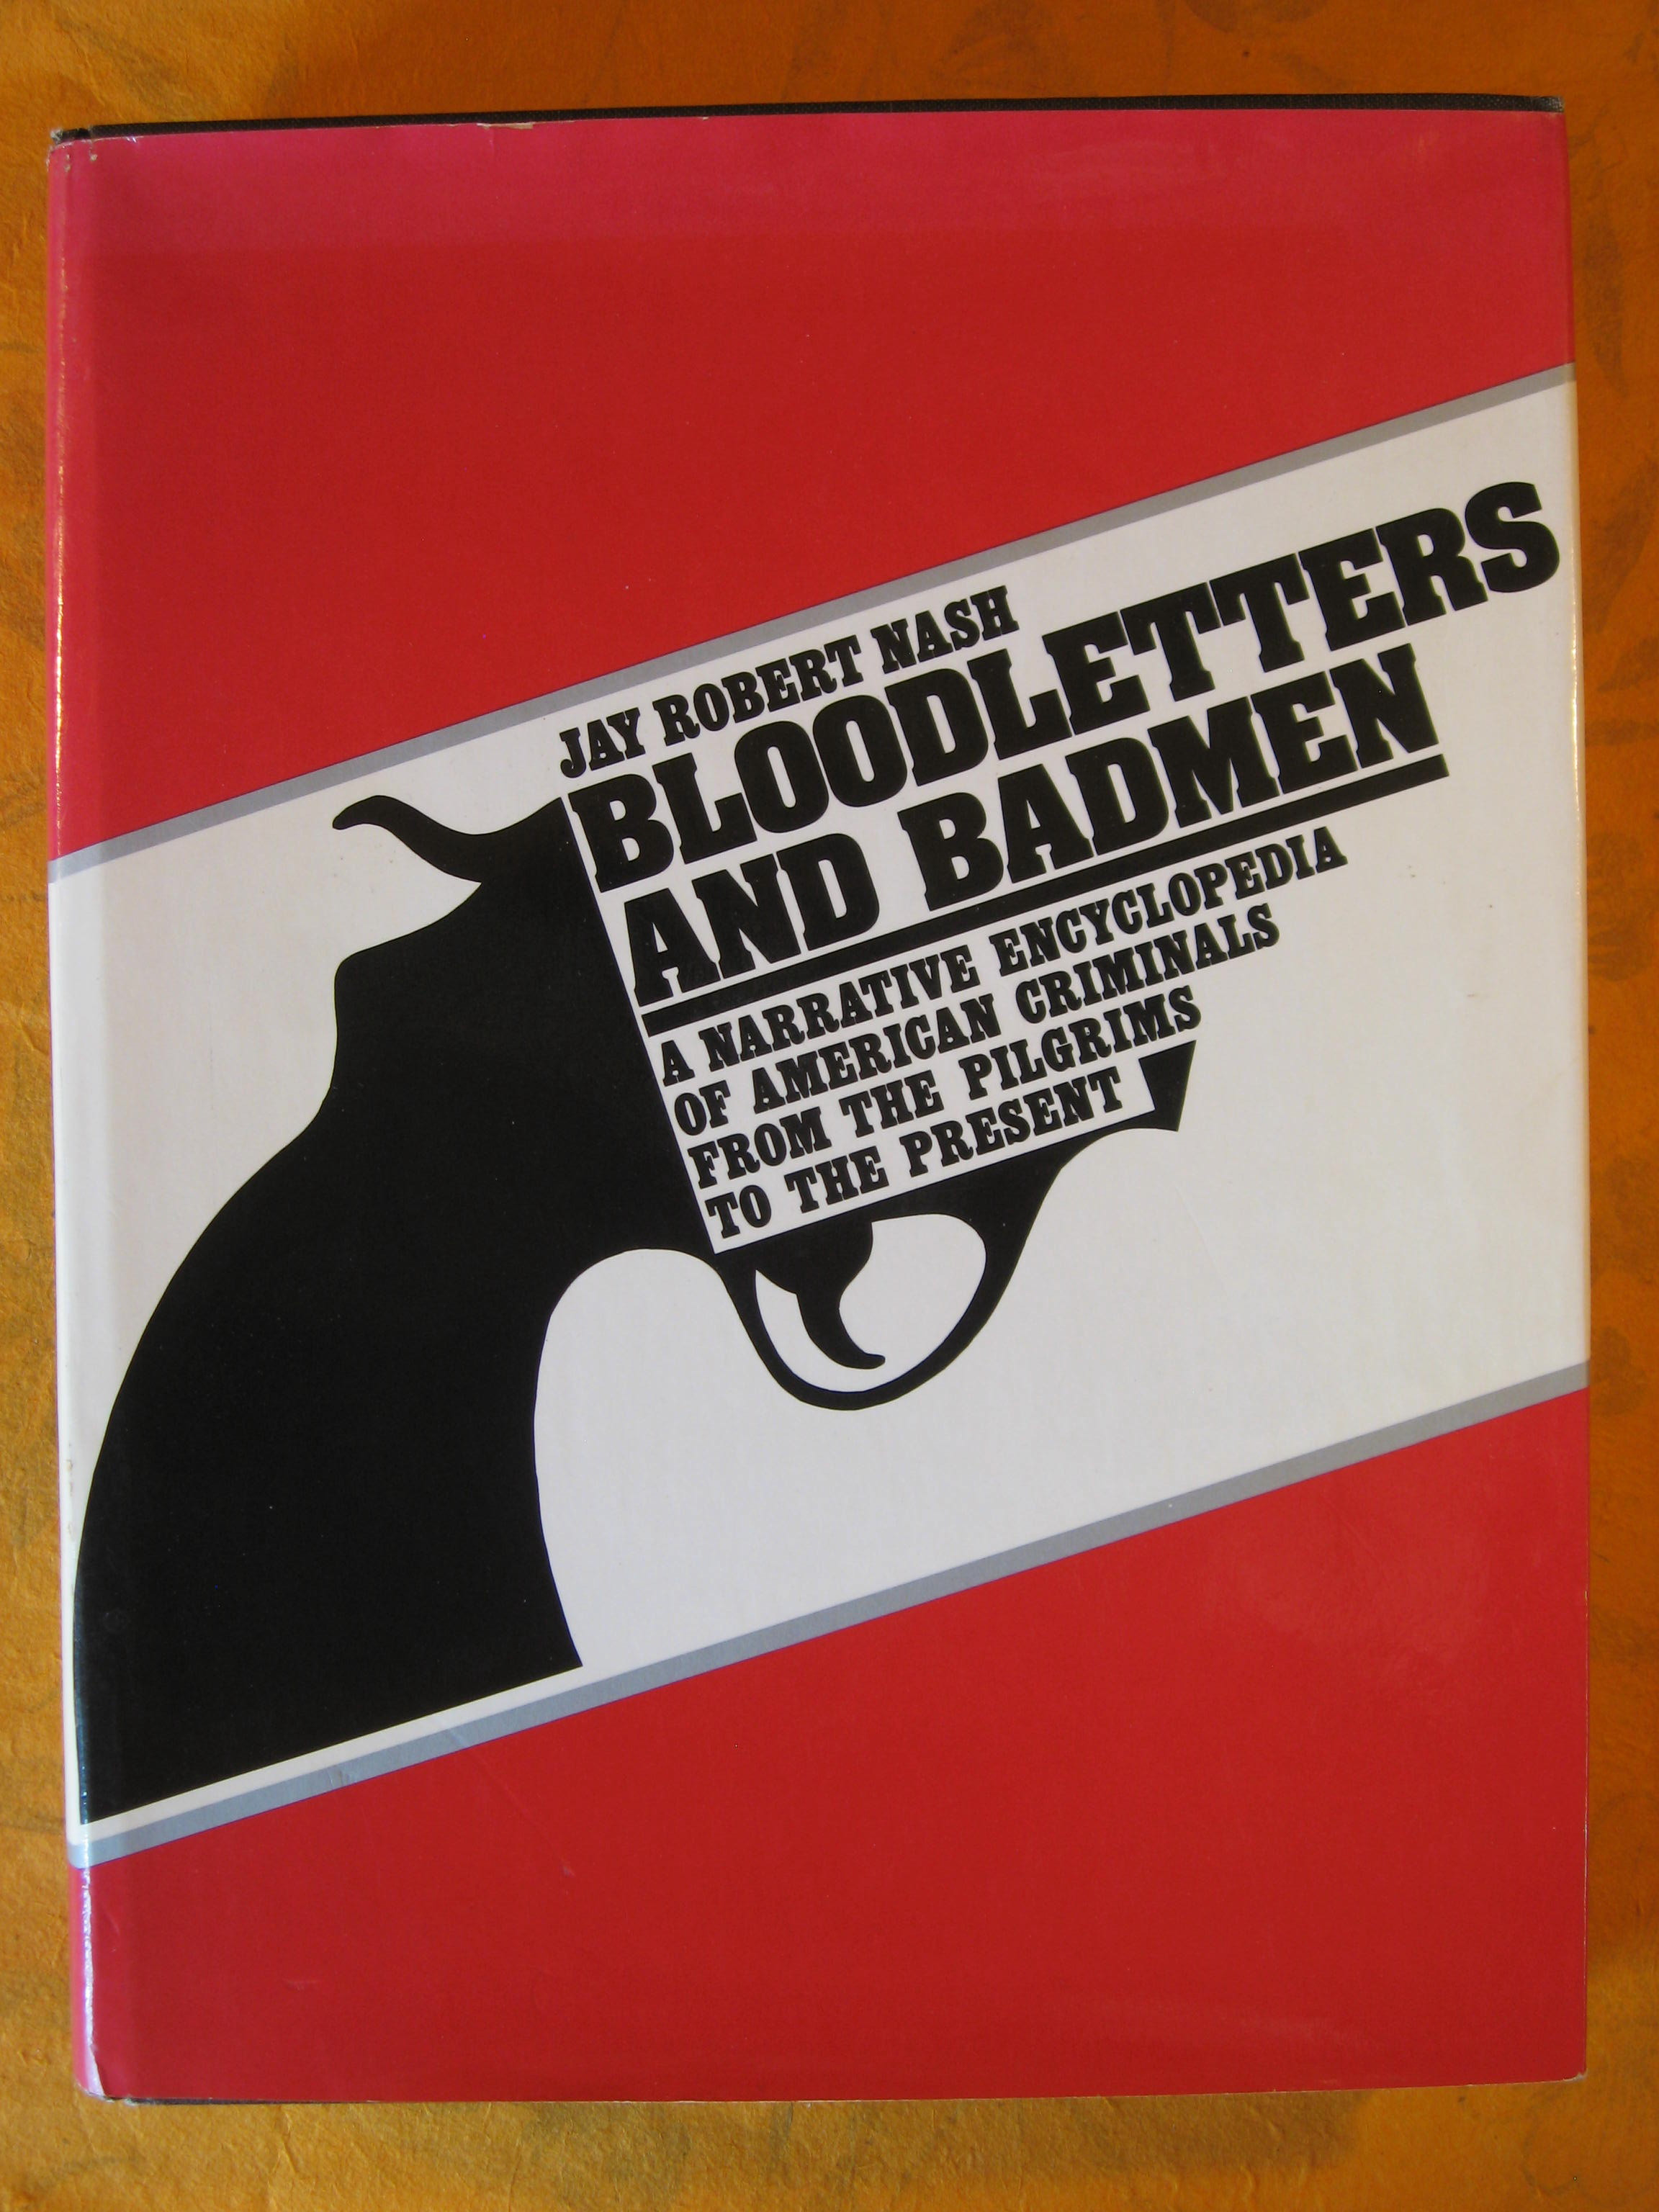 Image for Bloodletters and Badmen: A Narrative Encyclopedia of American Criminals from the Pilgrims to the Present